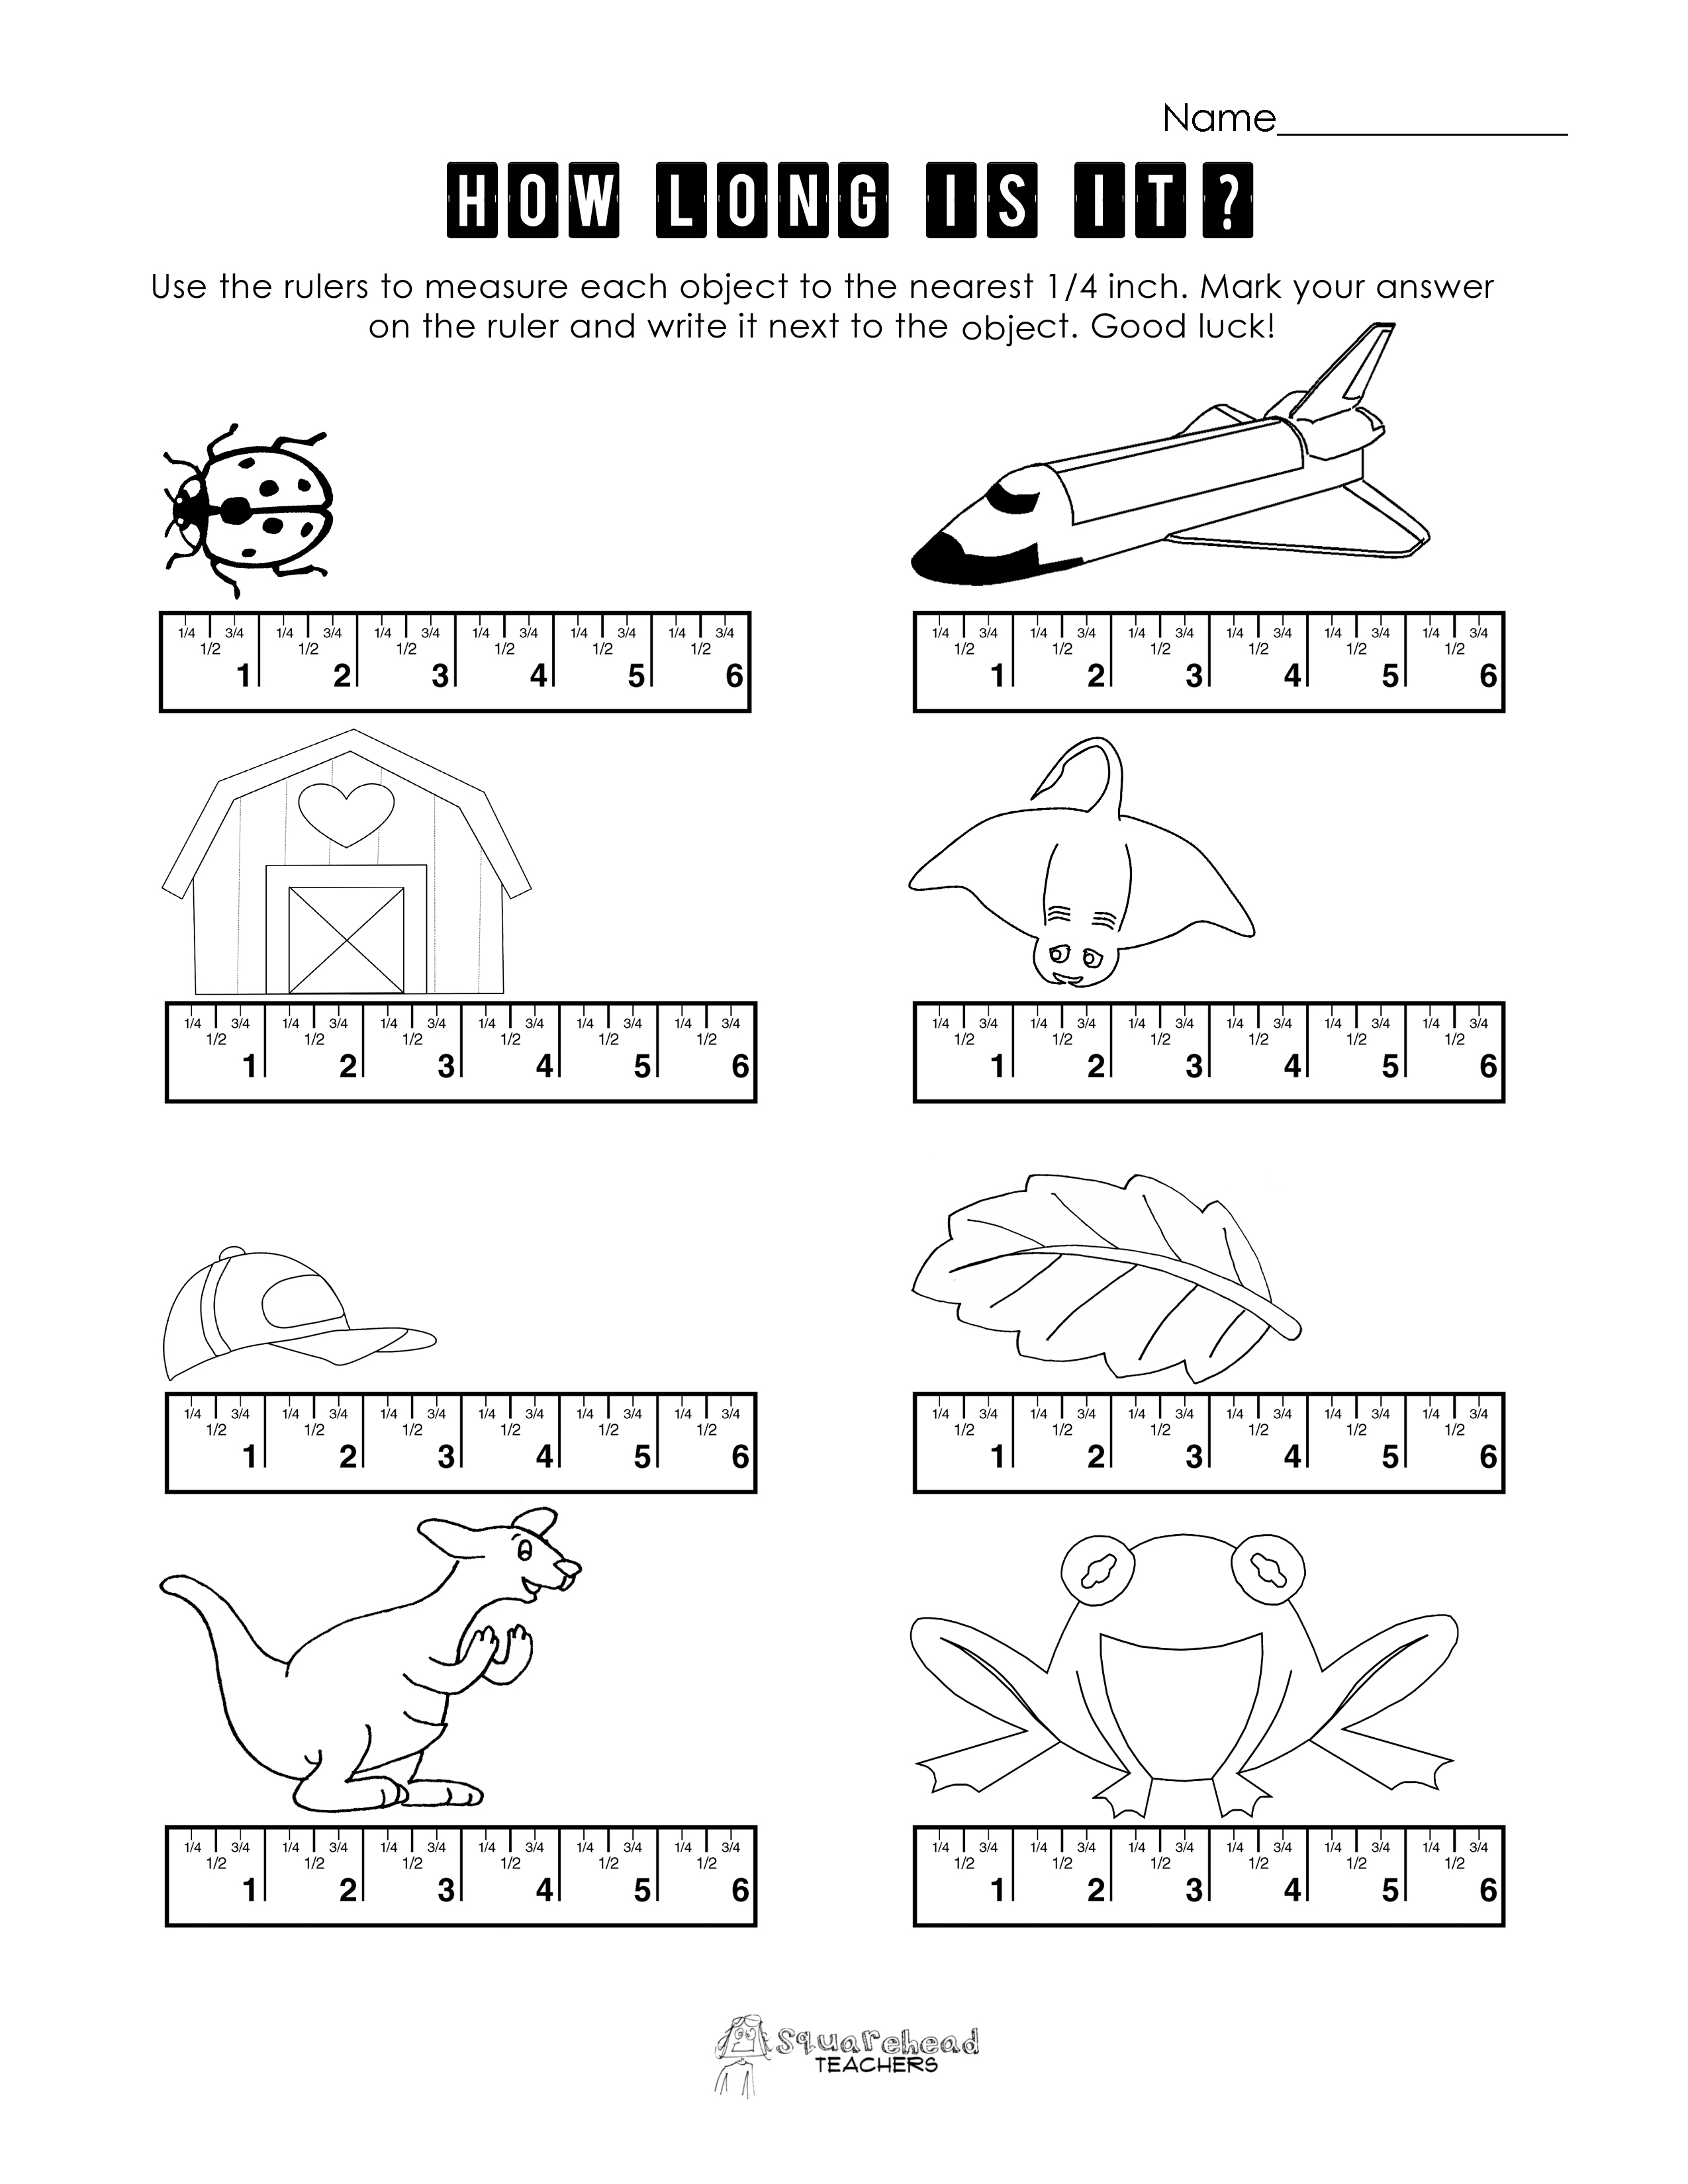 Measurement Practice 3 – Ruler Measurements Worksheets